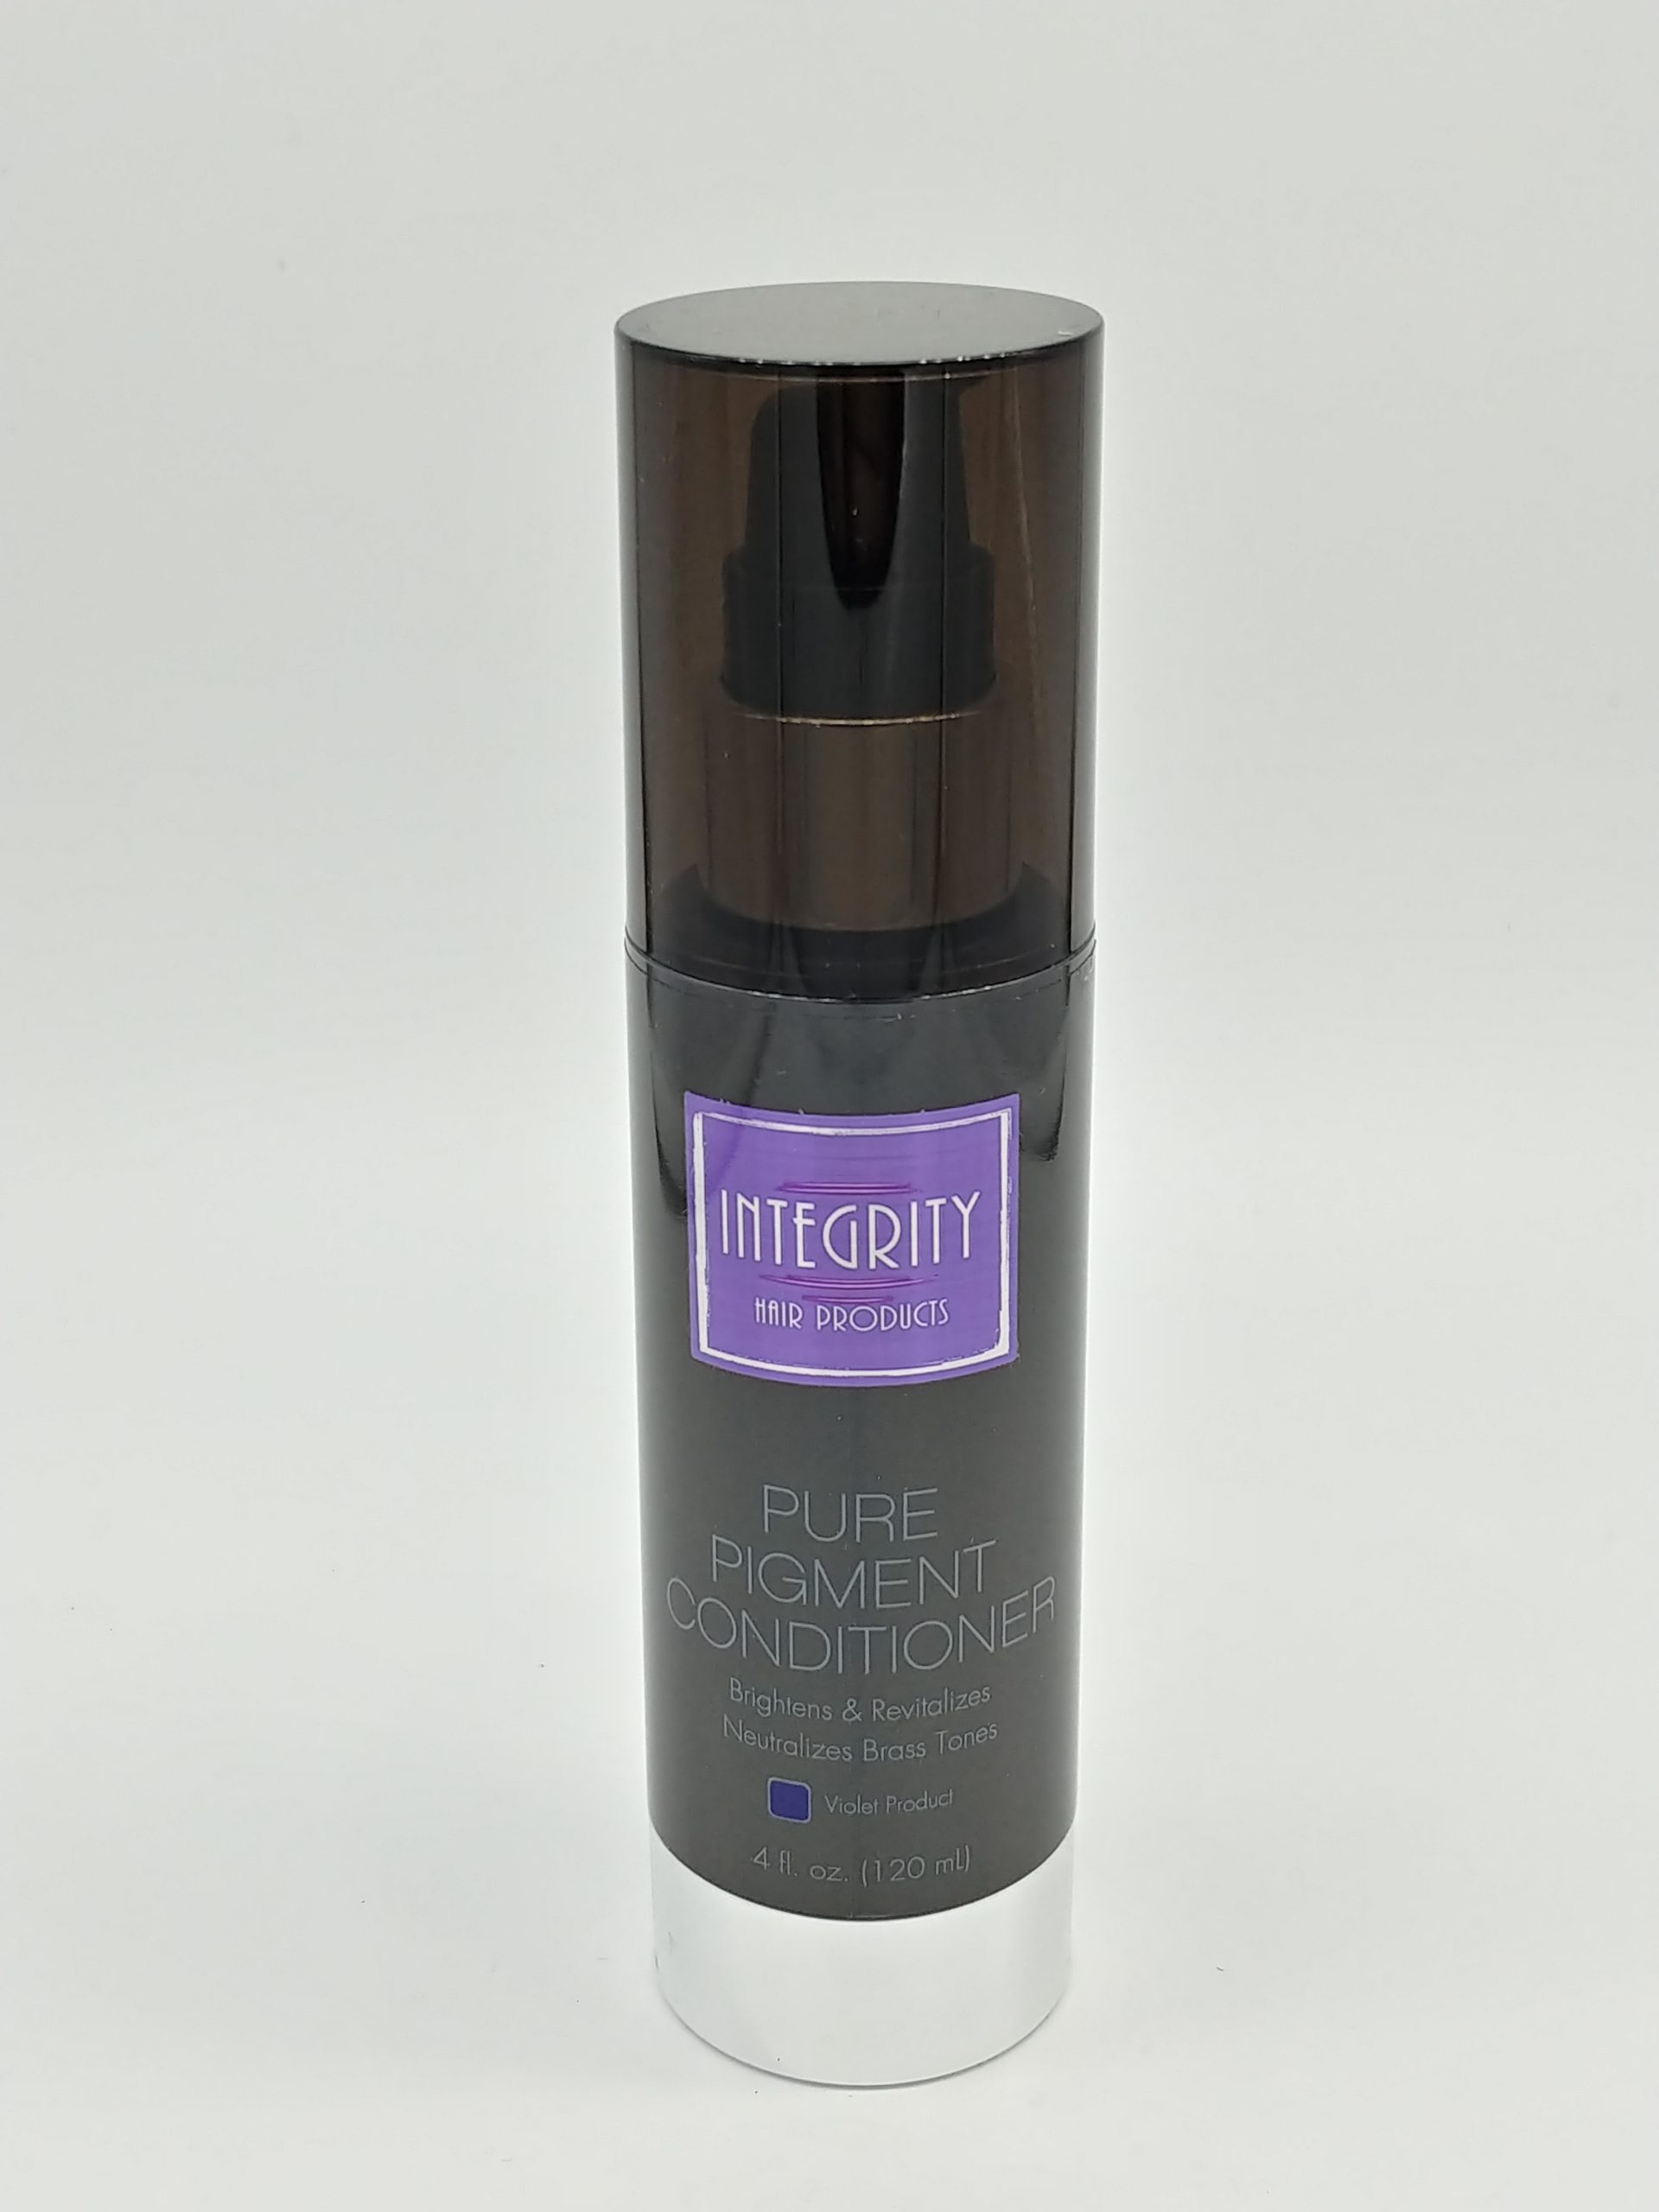 Integrity Pure Pigment Conditioner: Violet Product 4oz